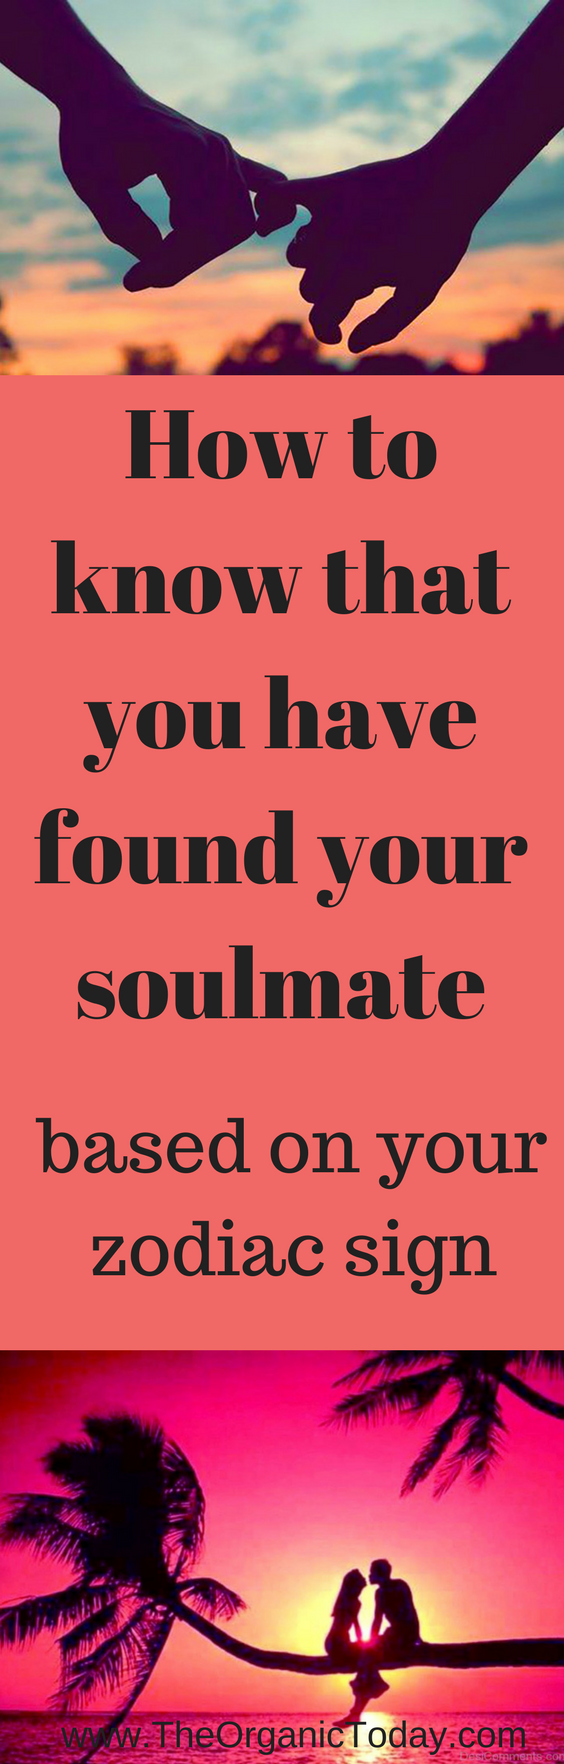 Knowing you found your soulmate